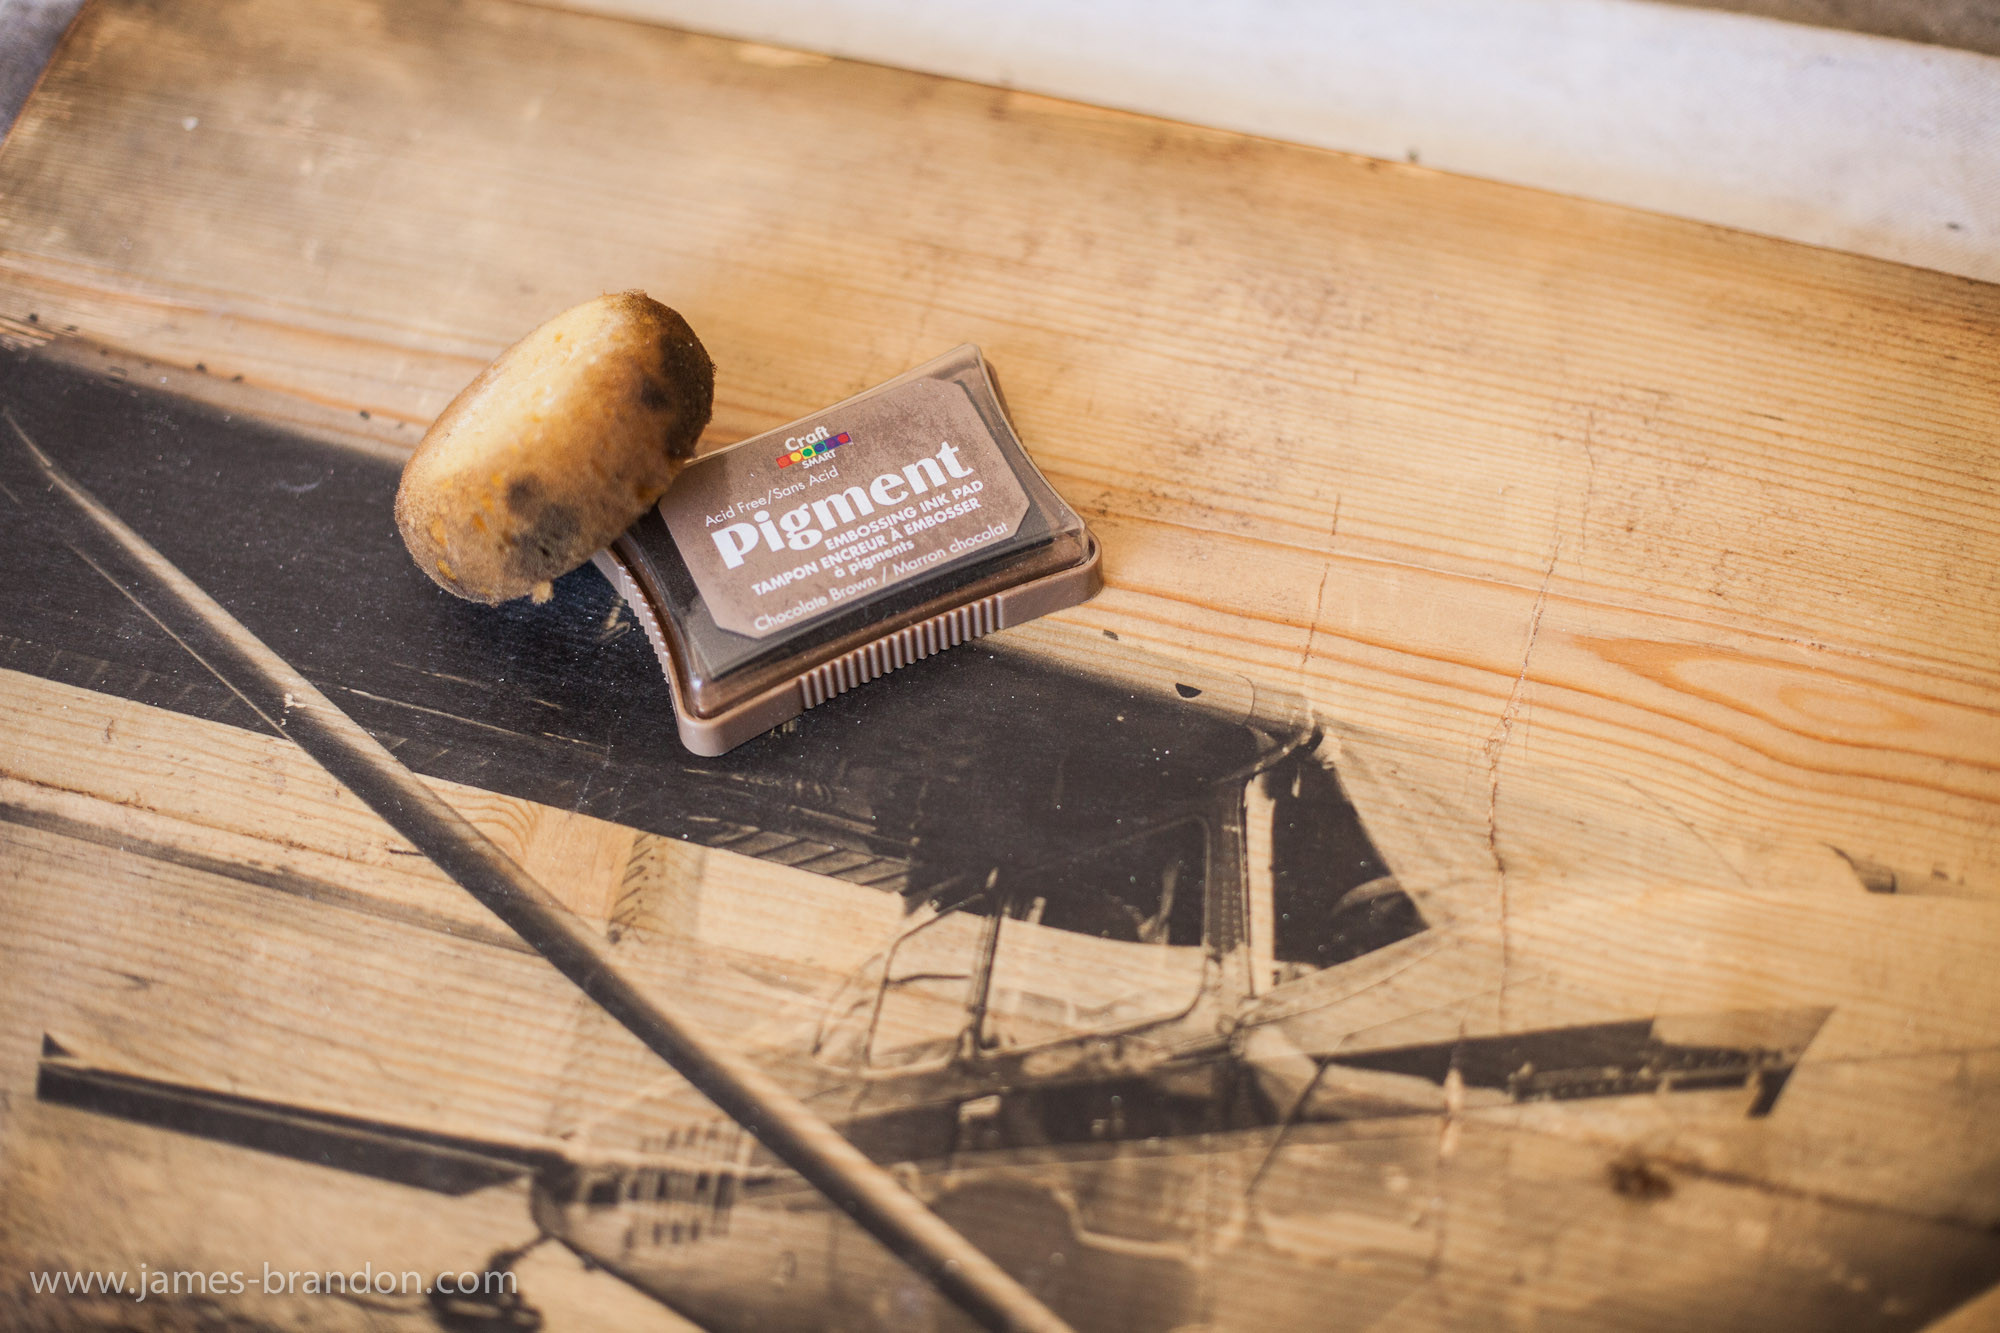 Best ideas about Prints On Wood DIY . Save or Pin How To Transfer Prints To Wood An Awesome graphy DIY Now.